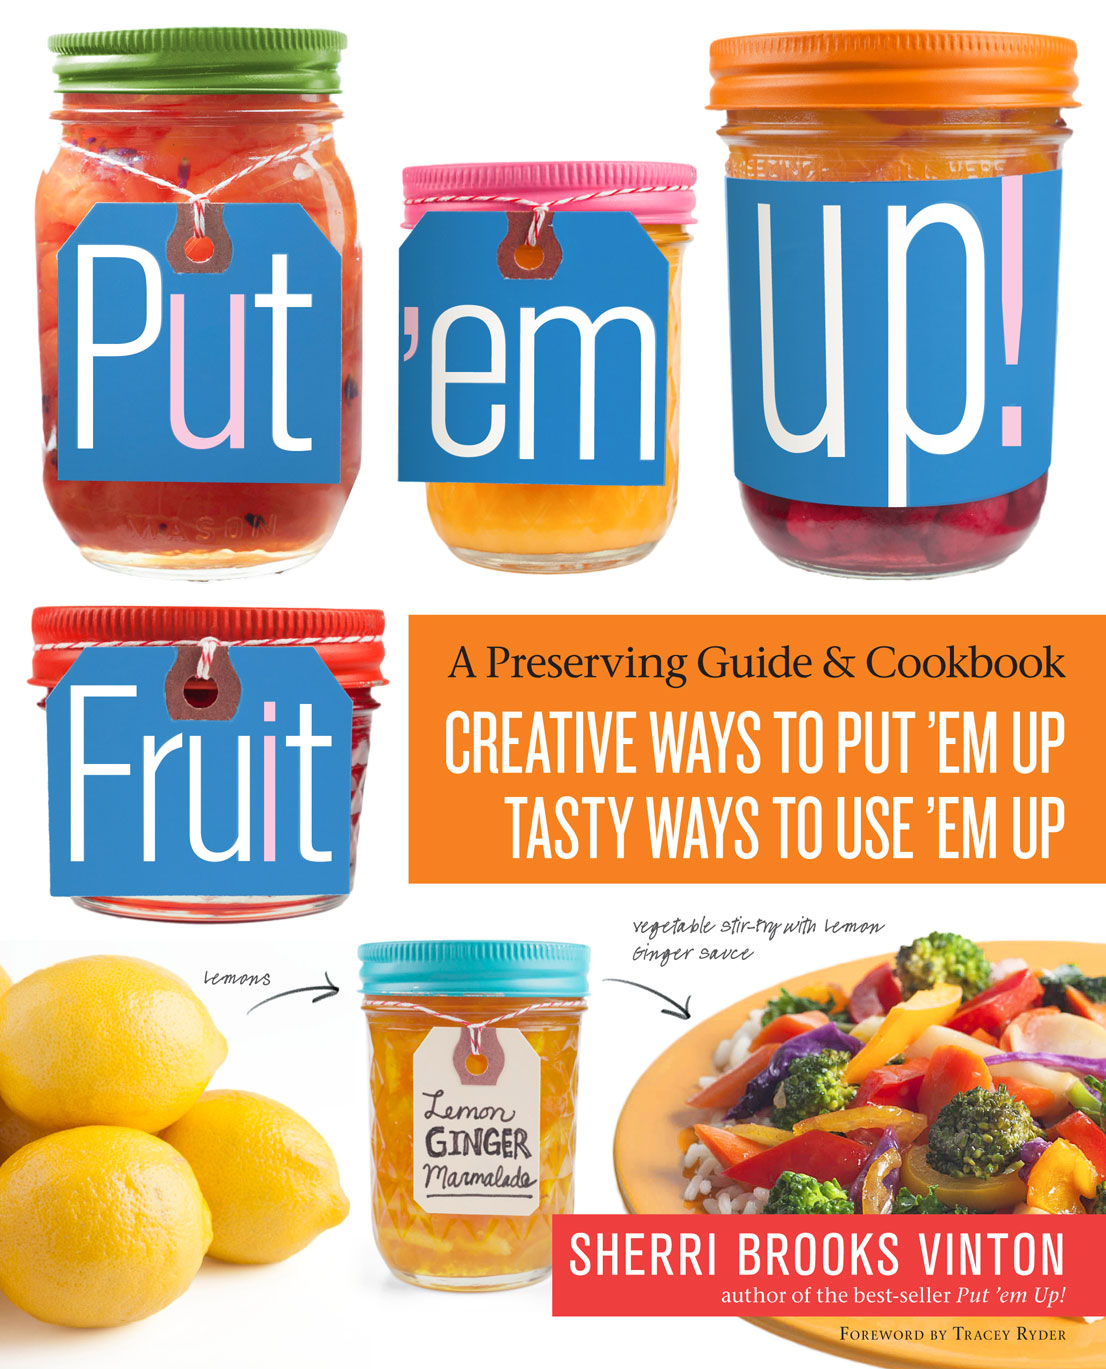 Put'em Up! FRUIT Book – All you need to know for preserving fruits! - The Backyard Orchardist Book - A Complete Guidetogrowing Fruit Trees